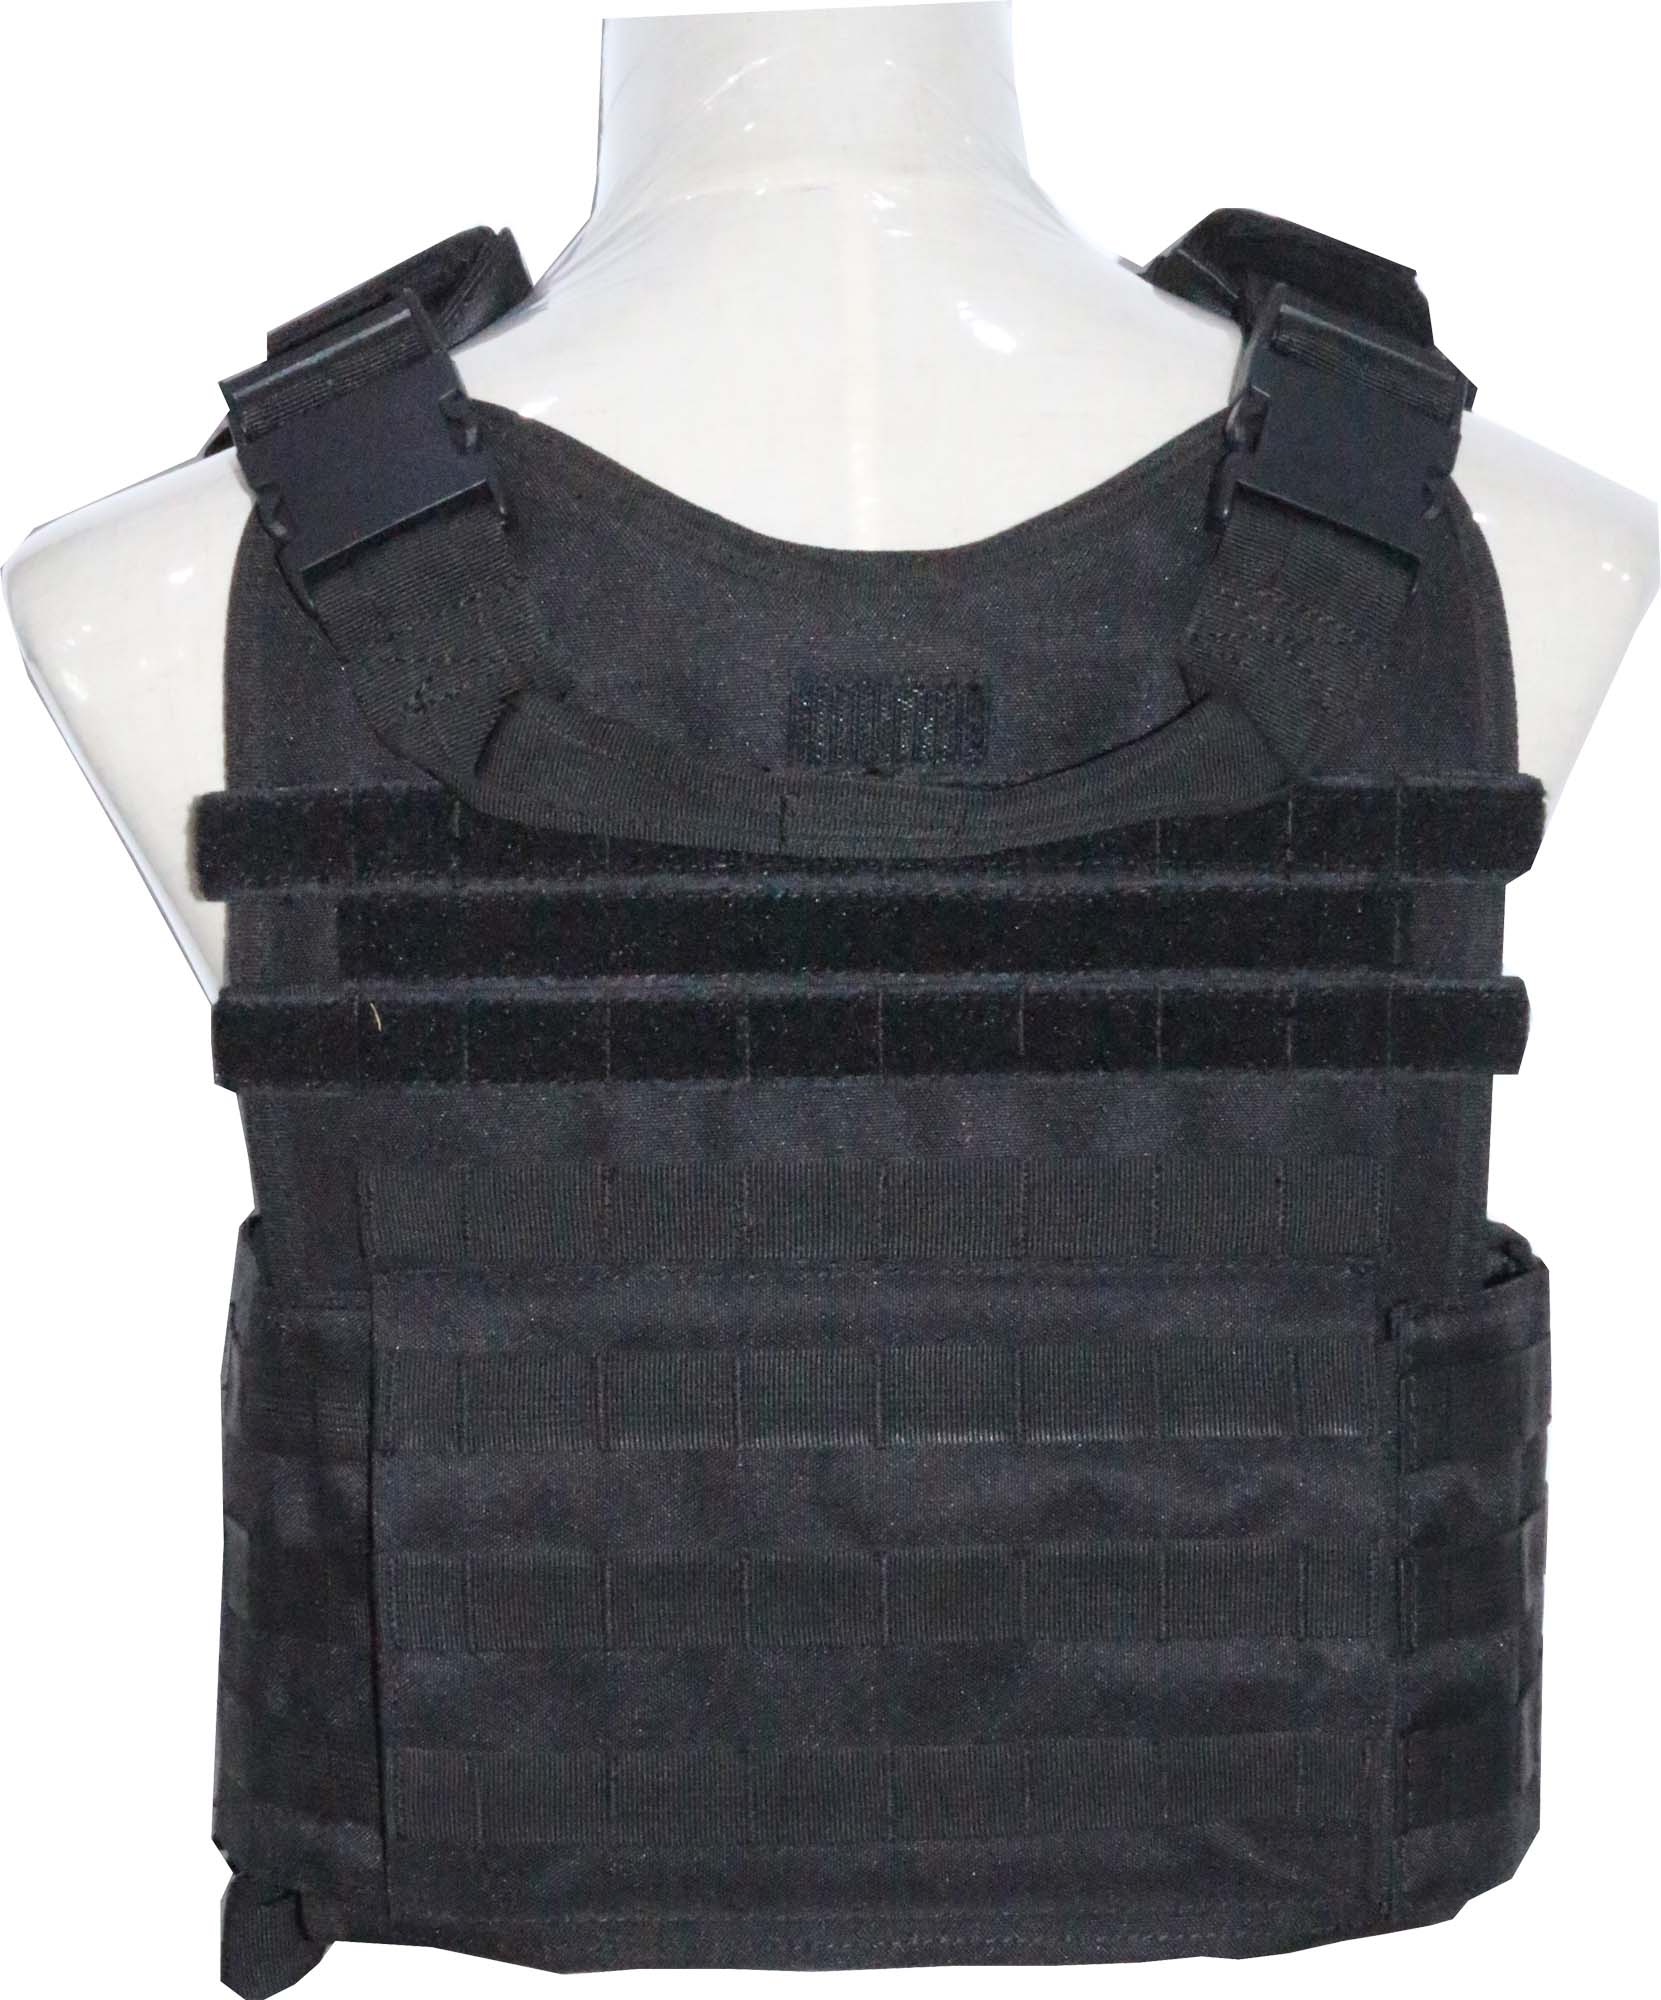 Military Tactcial Ballist Vest Plate Carrier